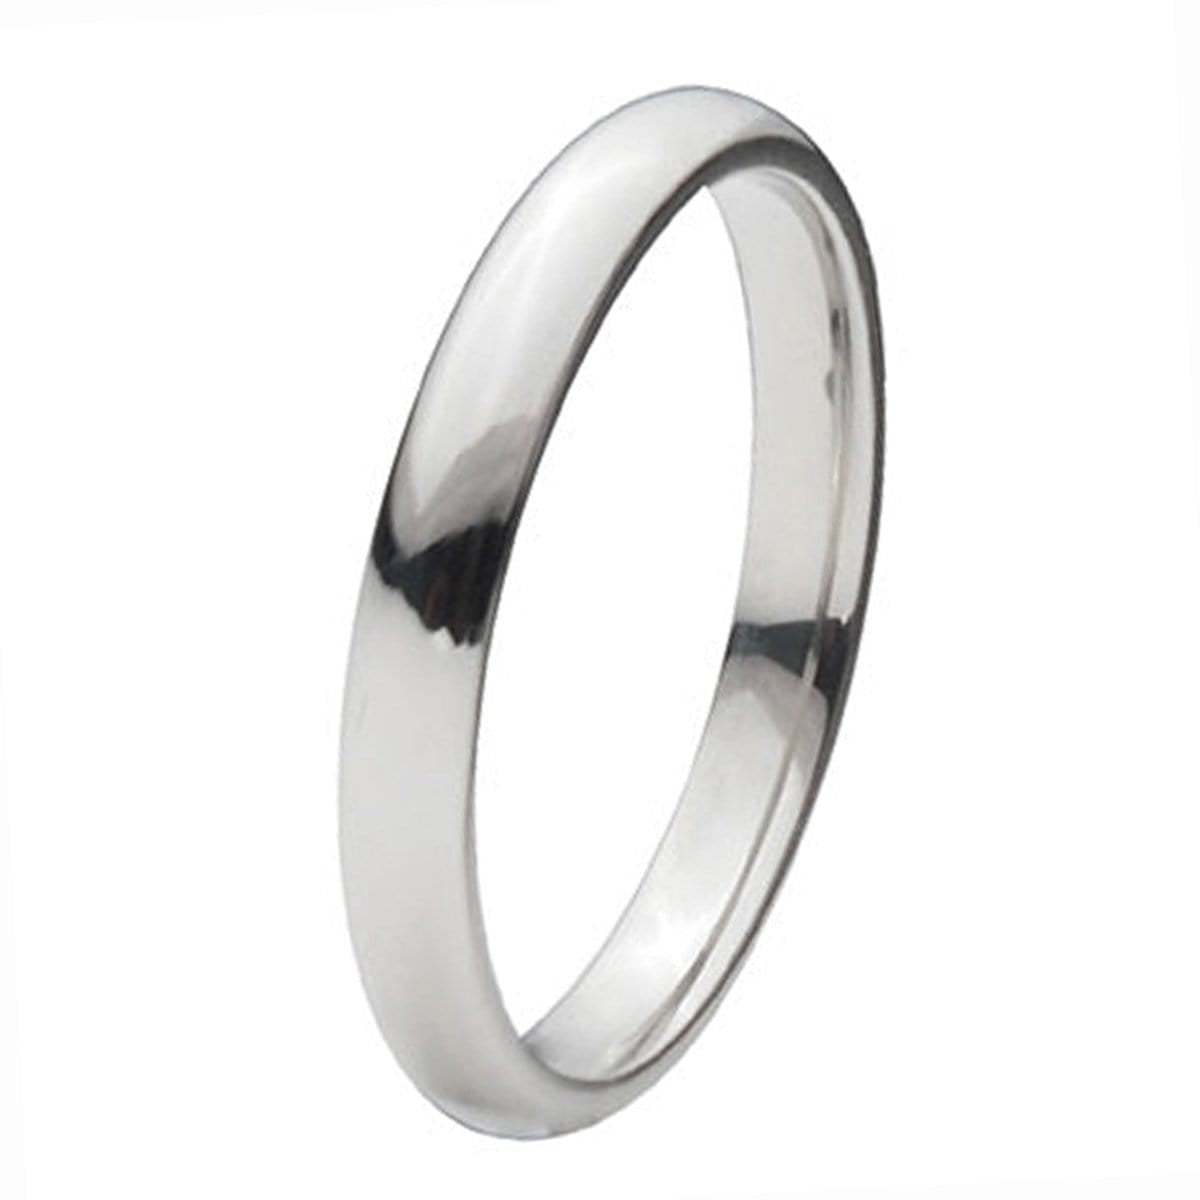 Silver Titanium Classic 3mm Band Rings